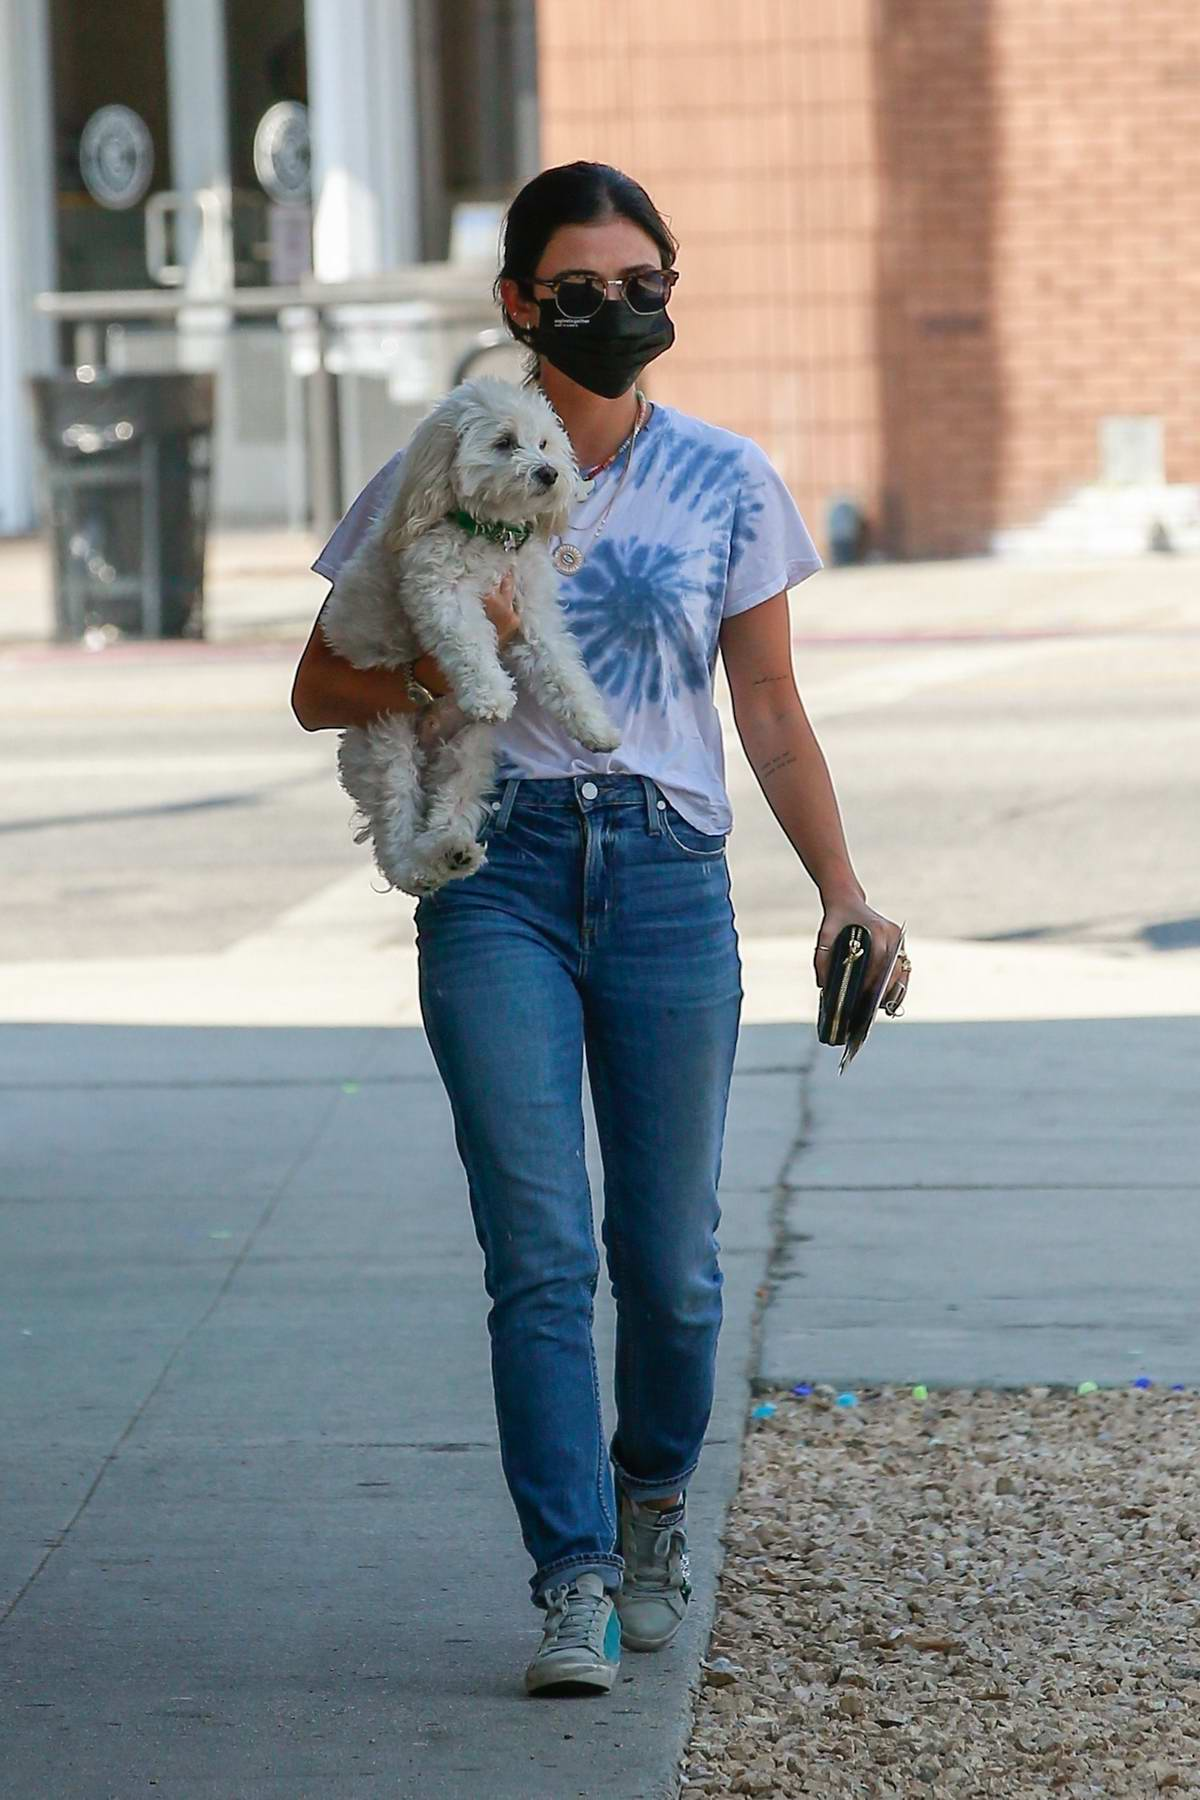 Lucy Hale brings her dog along as she stops by the Westfield fashion square in Sherman Oaks, California